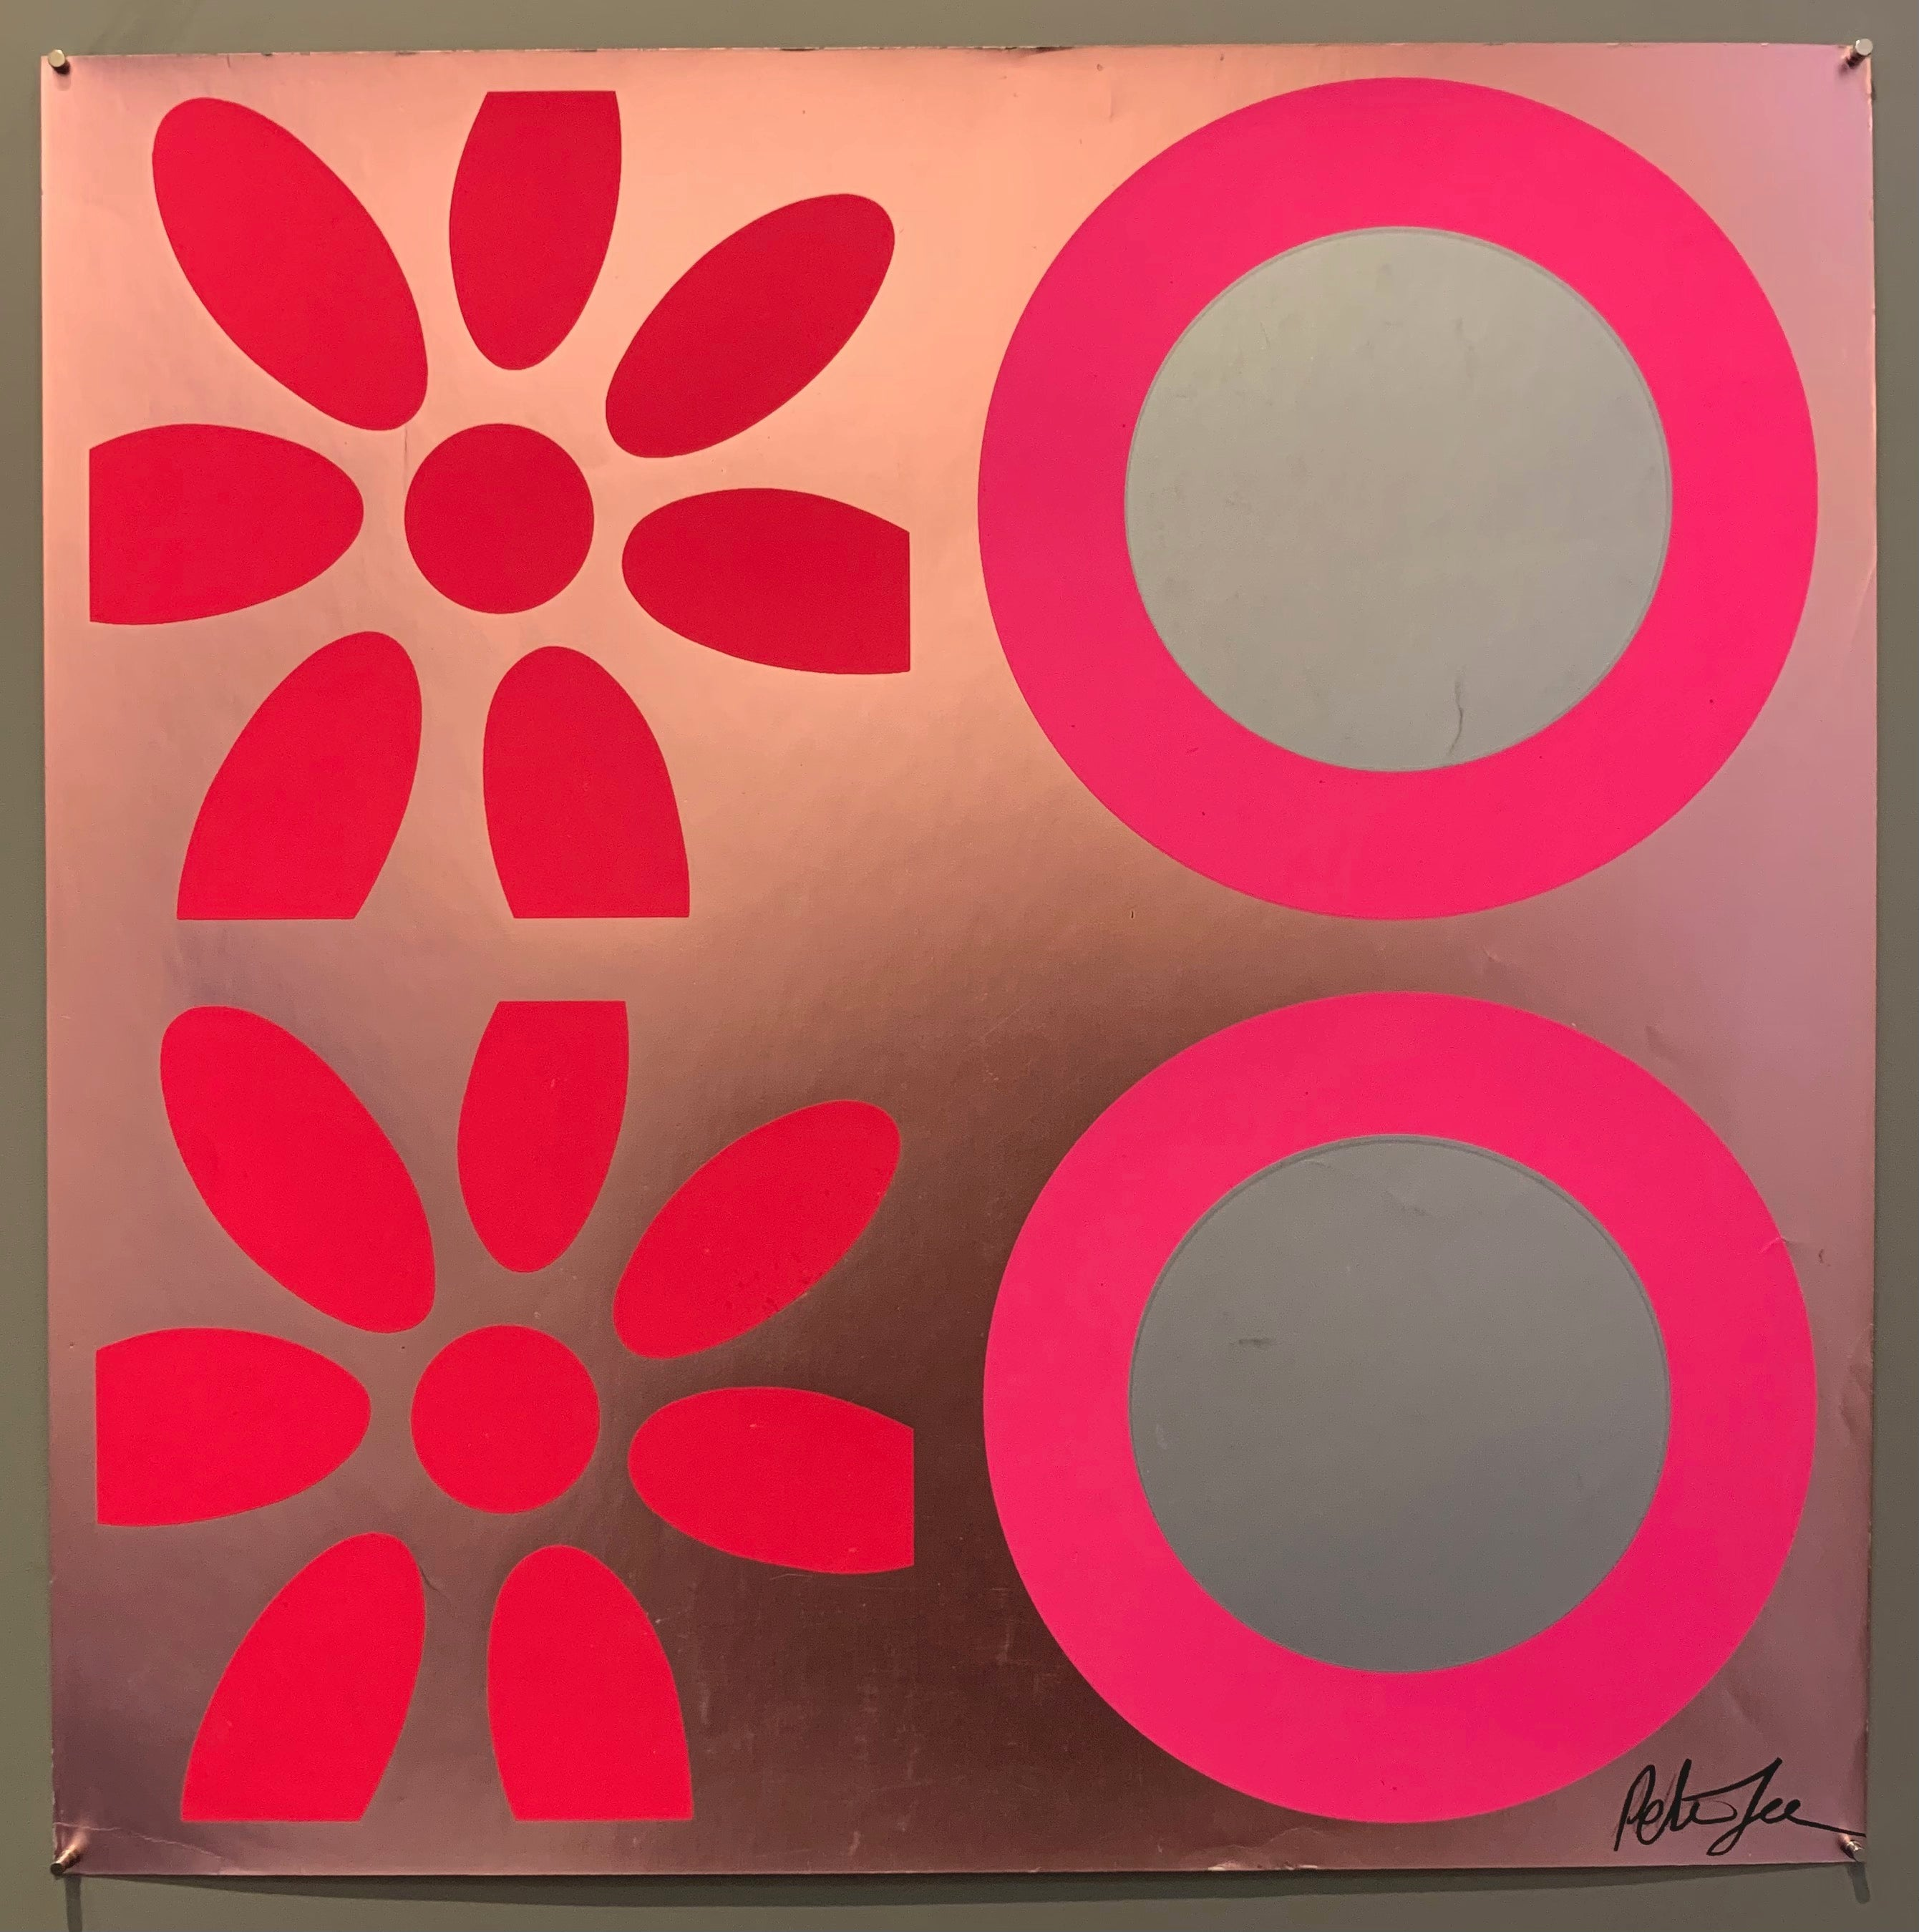 A square of four large motifs on paper. The colors are pink, grey, and metallic pink.